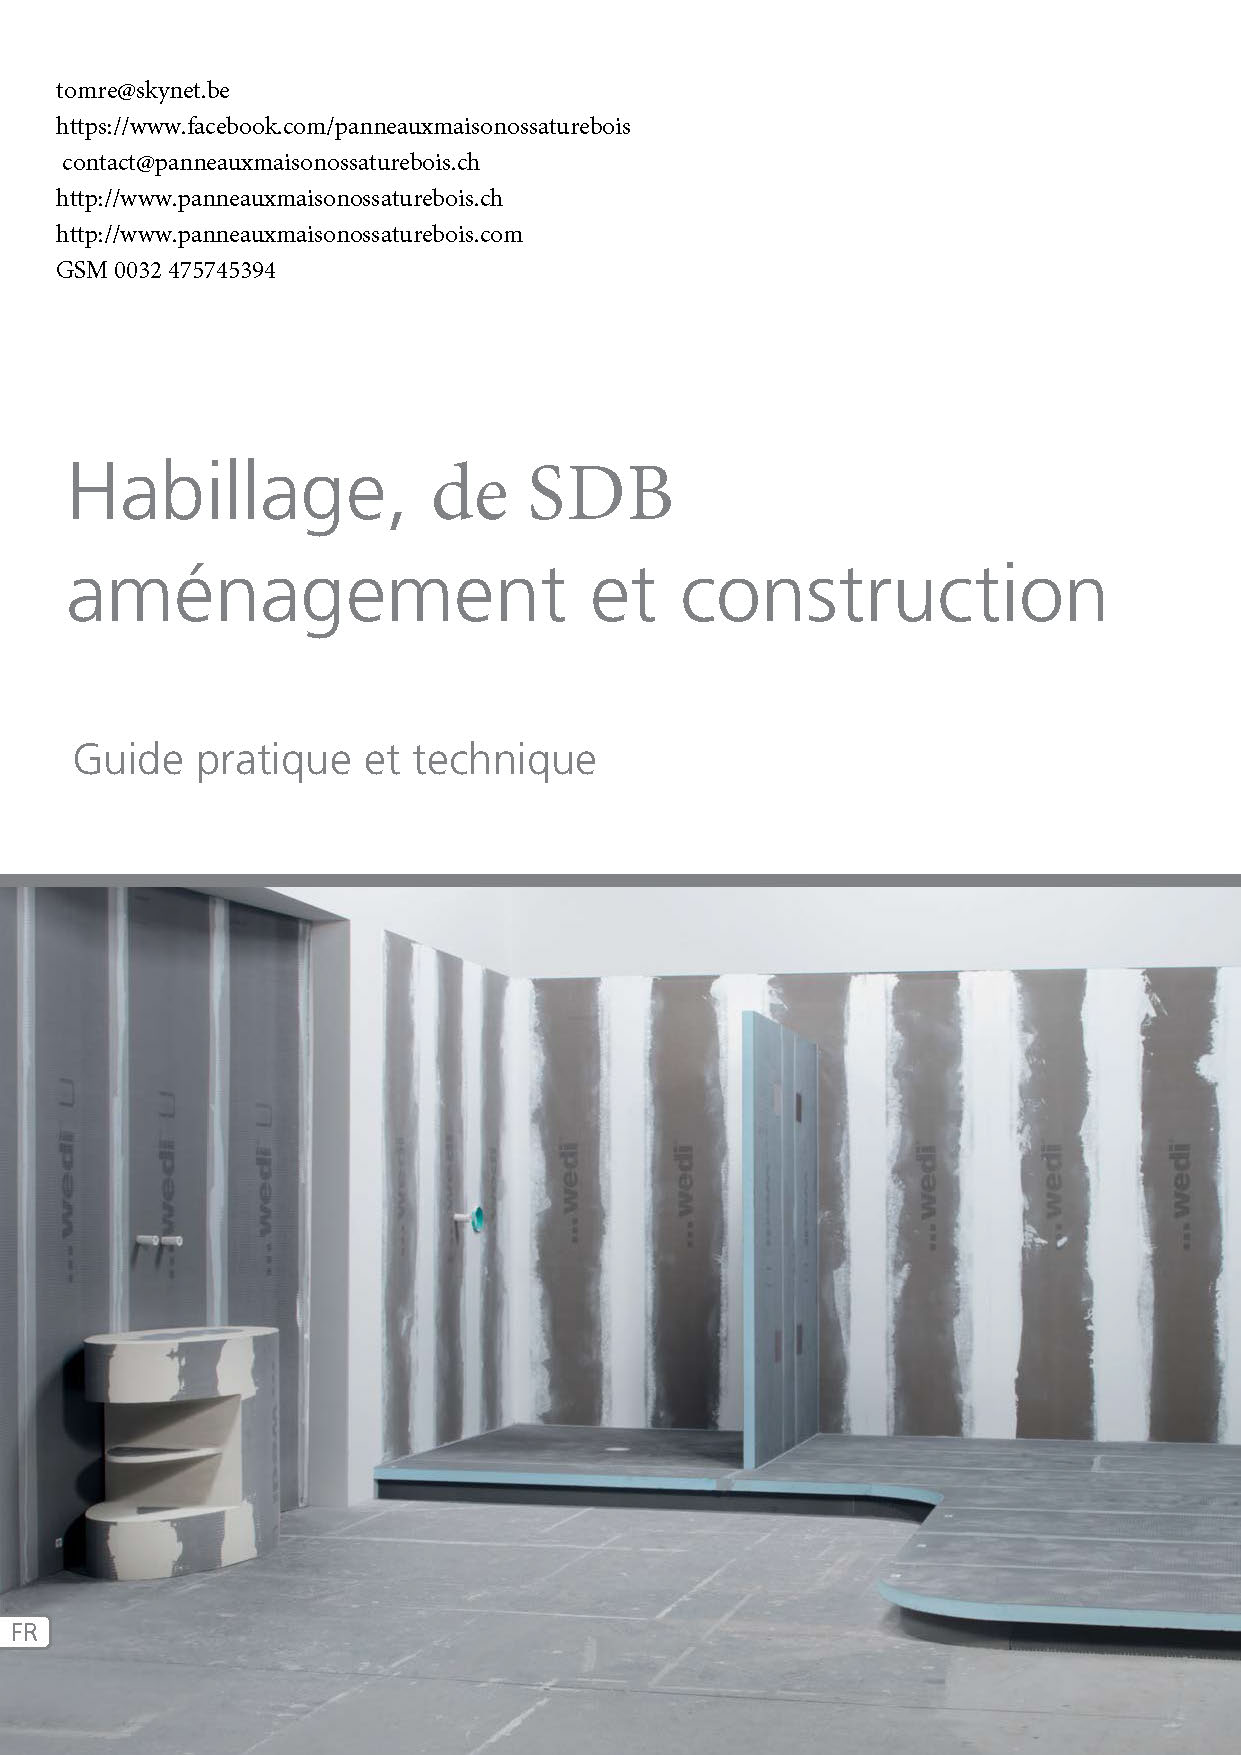 Guide pratique et technique Habillage amenagement et construction FR 2017 pdf_Page_01